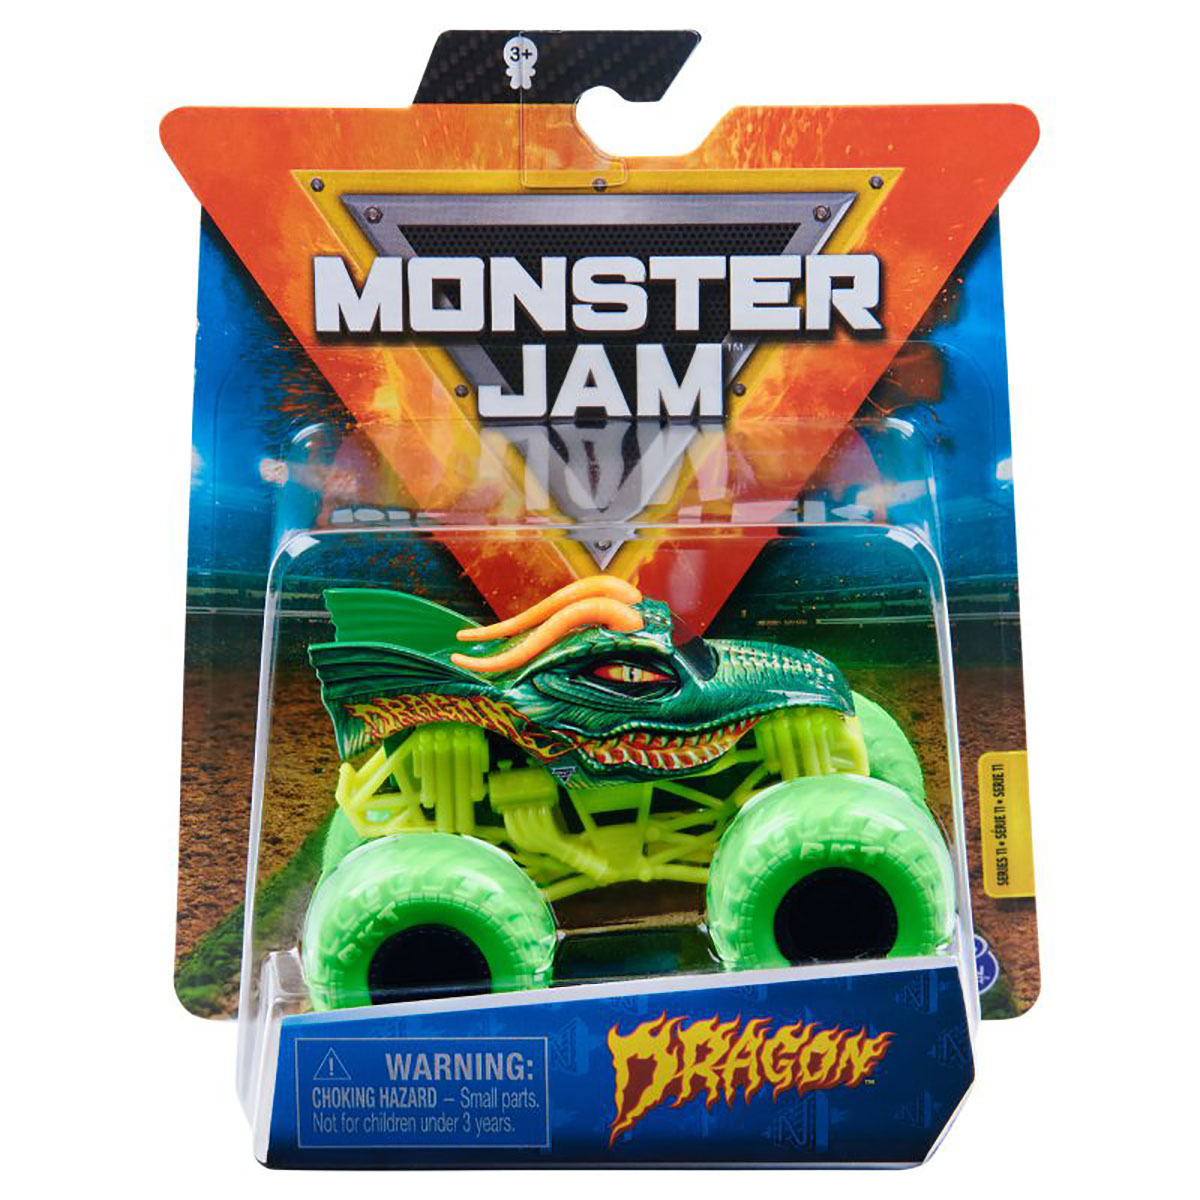 Masinuta Monster Jam, Scara 1:64, Dragon, Verde